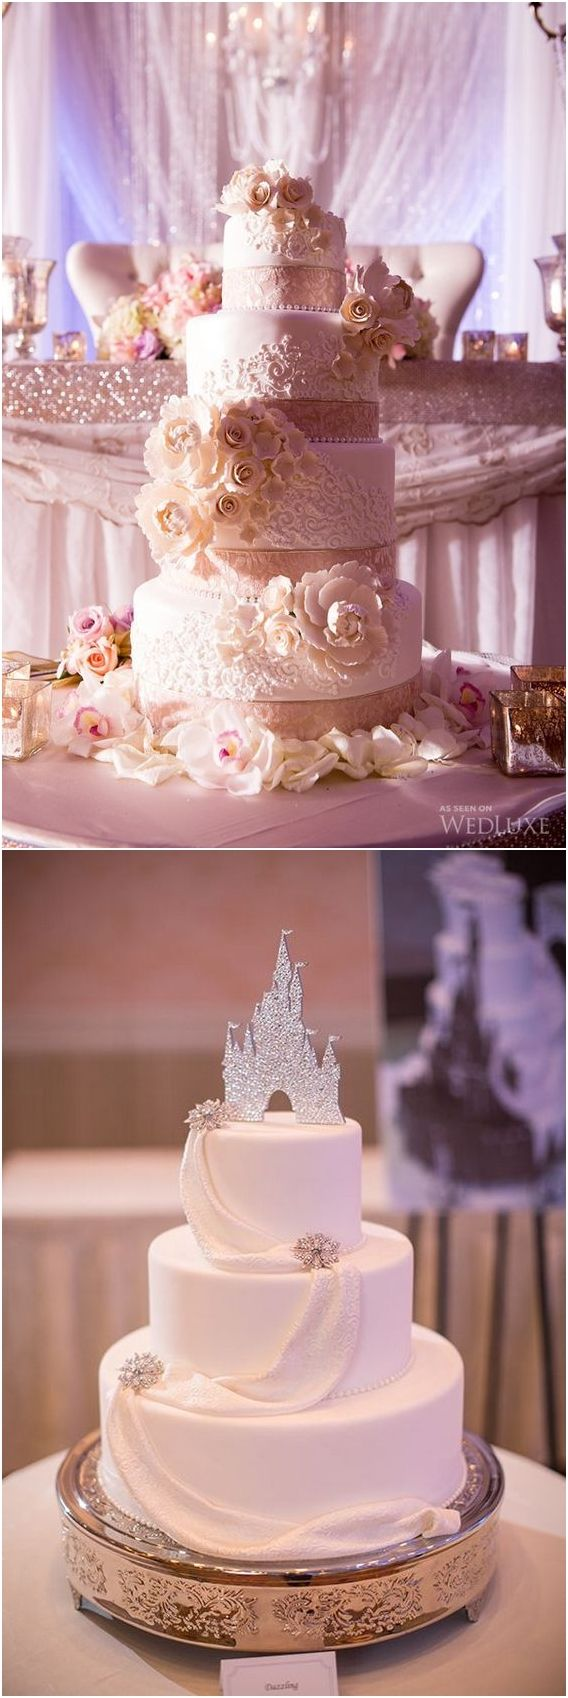 2041 best cakes images on Pinterest | Cake wedding, Conch fritters ...